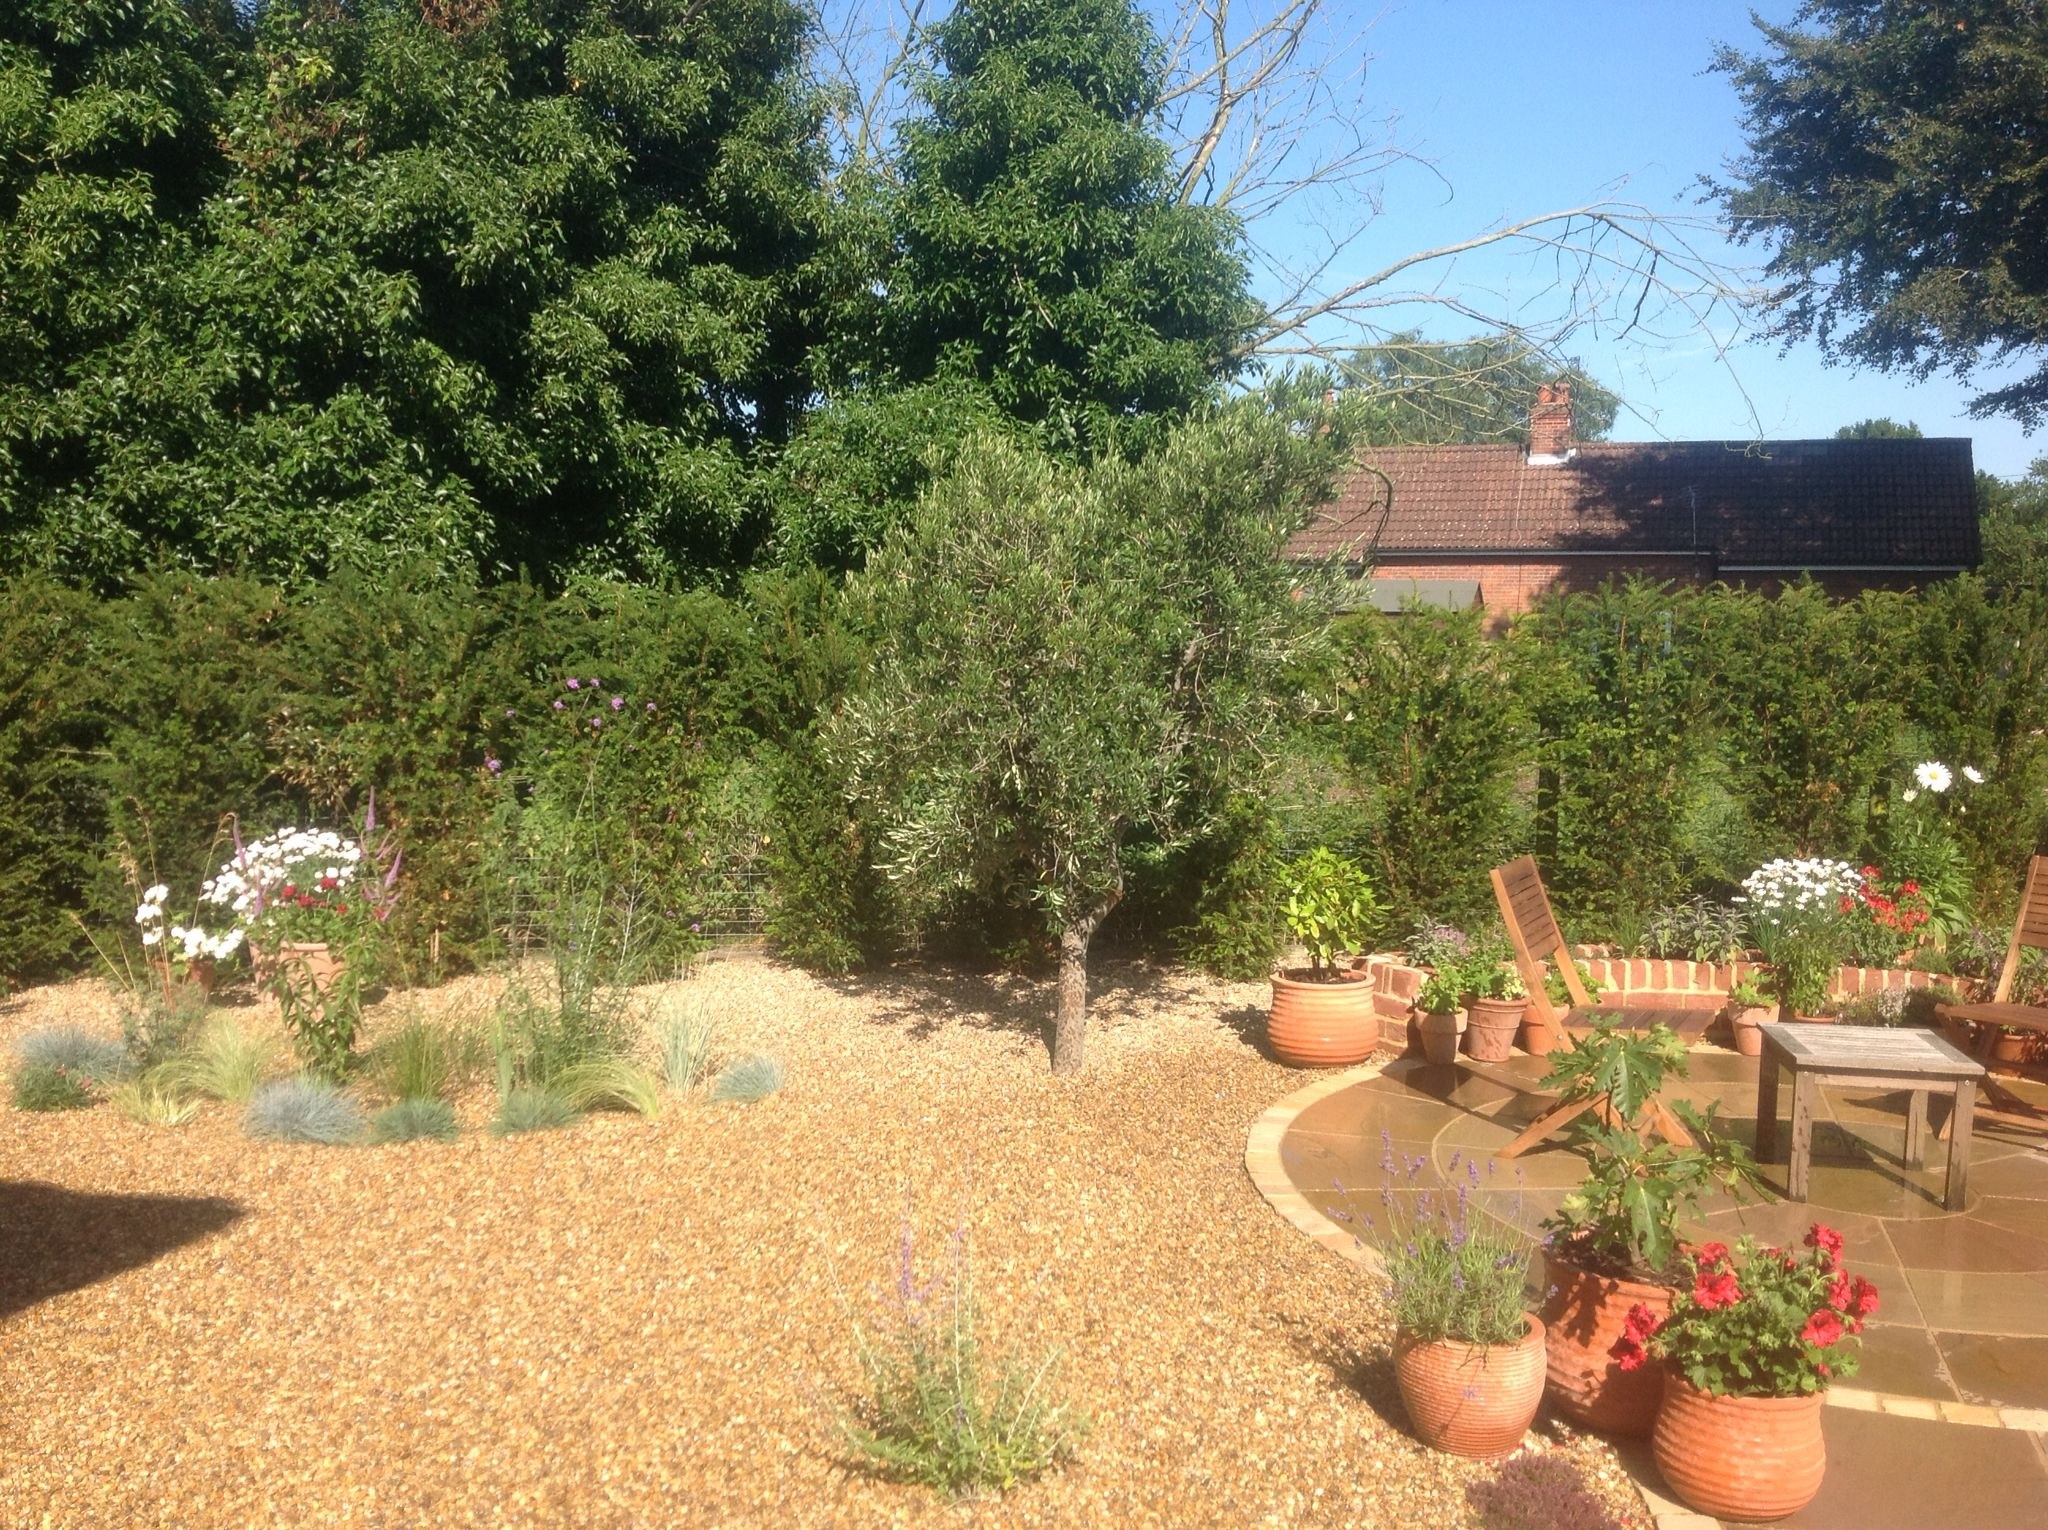 Just planted this lovely Arbequina Olive Tree in a